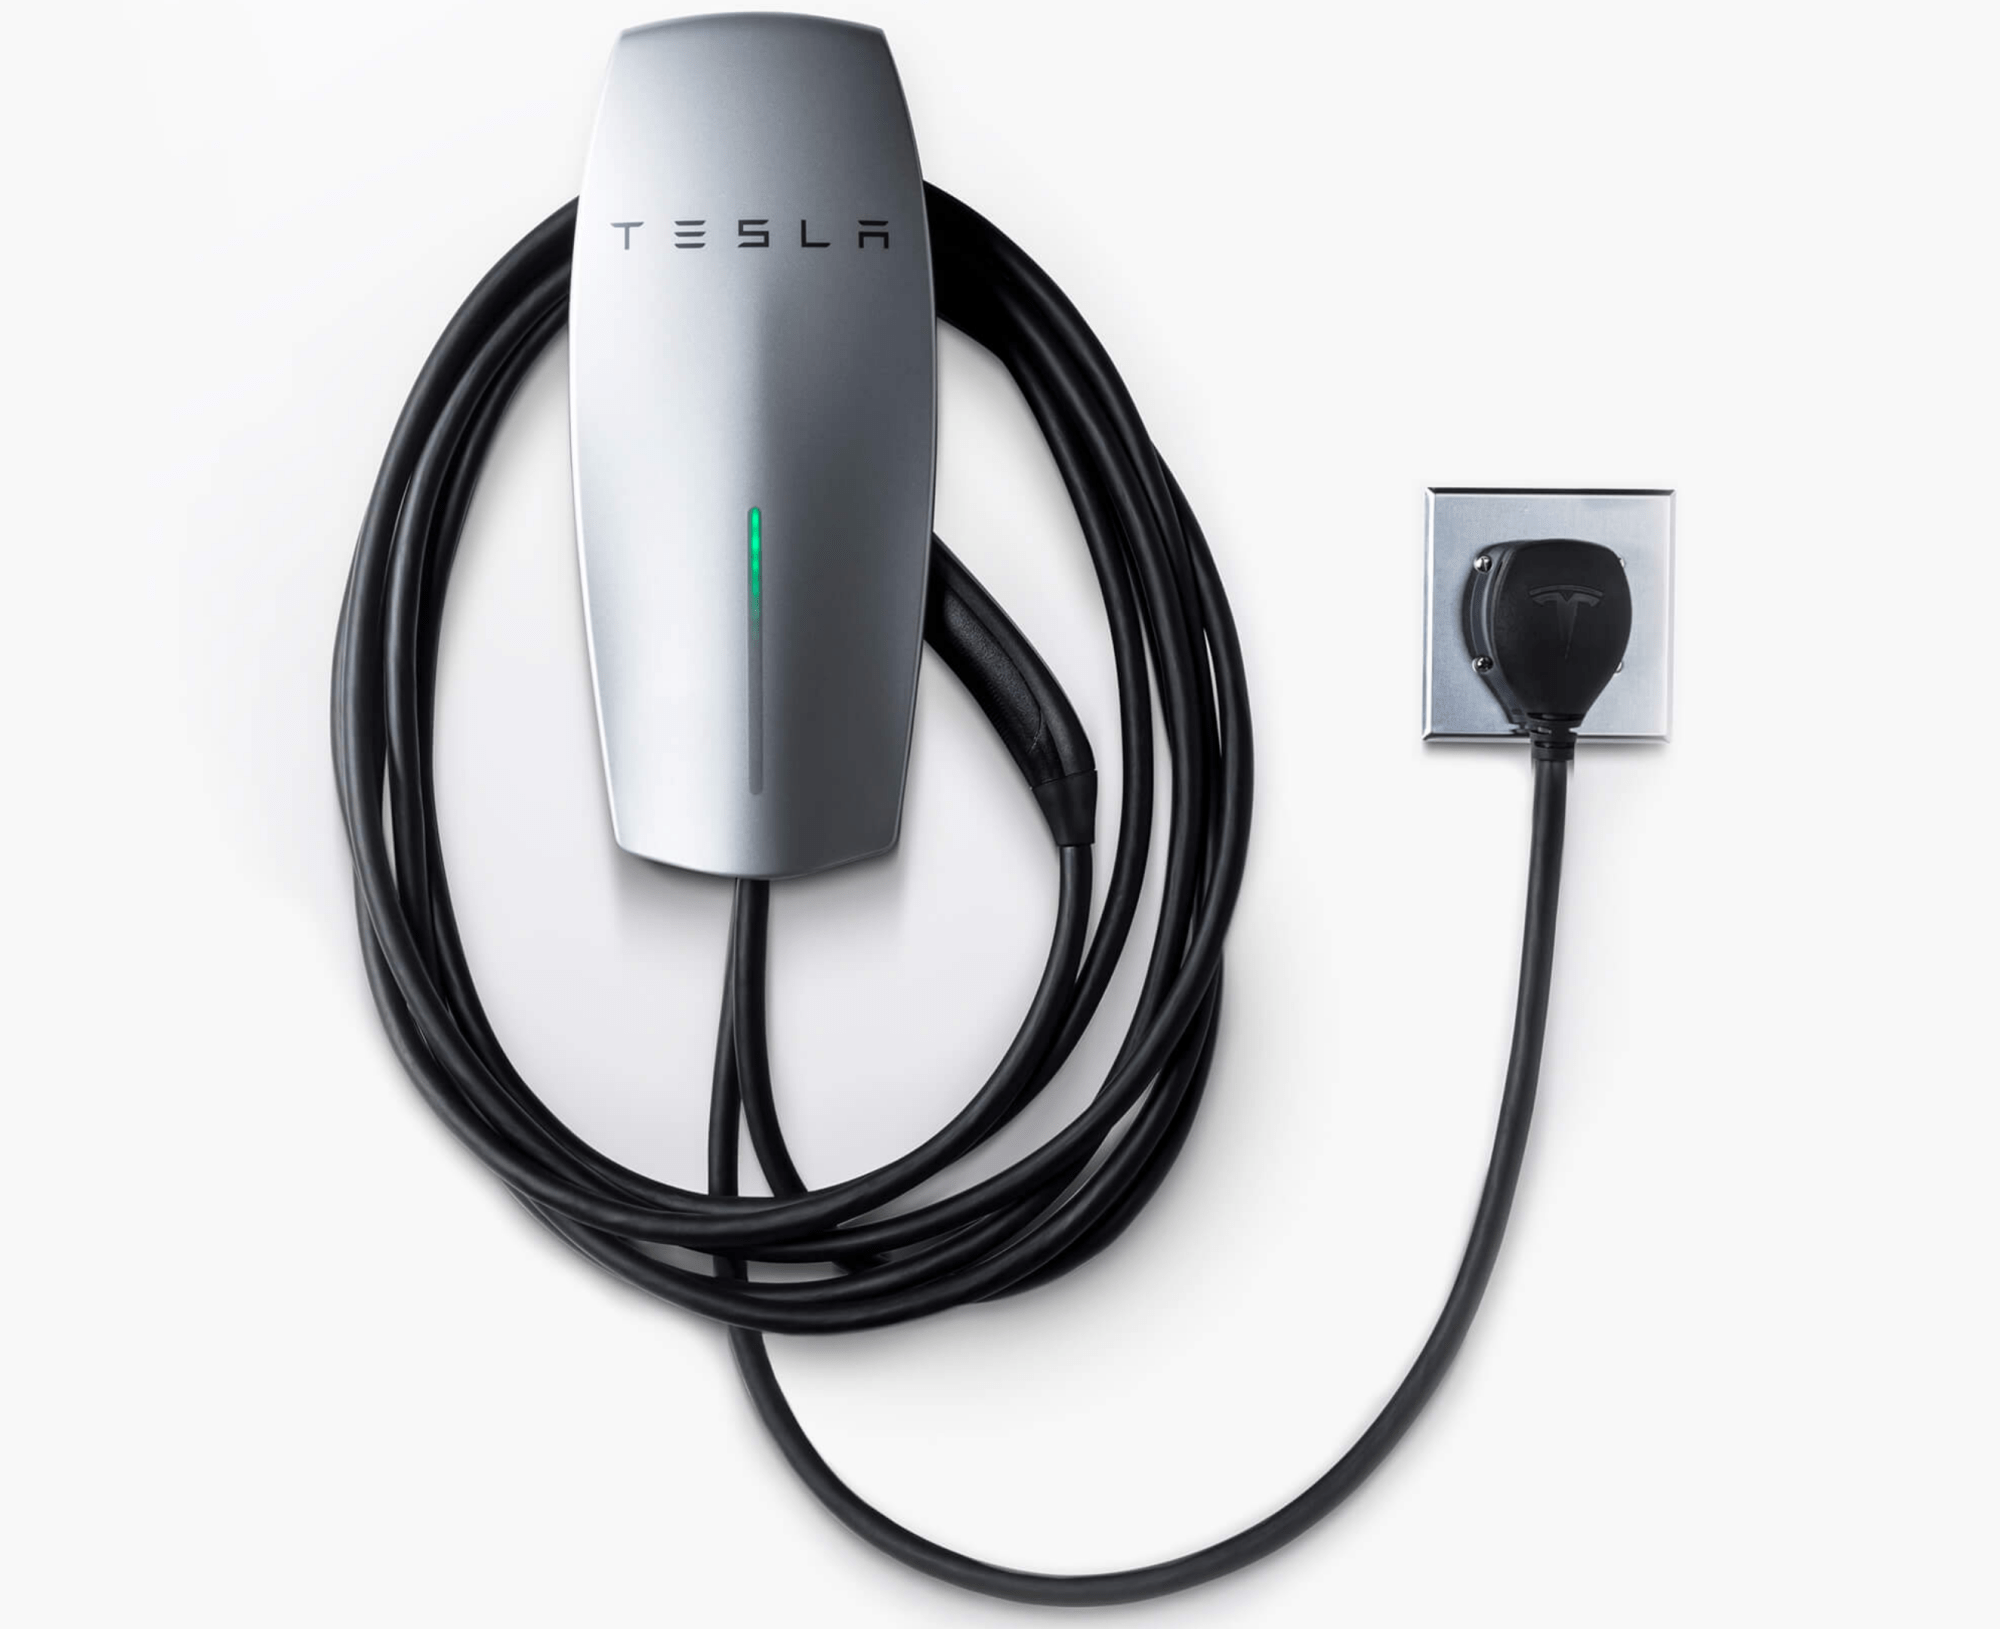 hight resolution of tesla unveils first home charging station that can be plugged into a wall outlet techcrunch